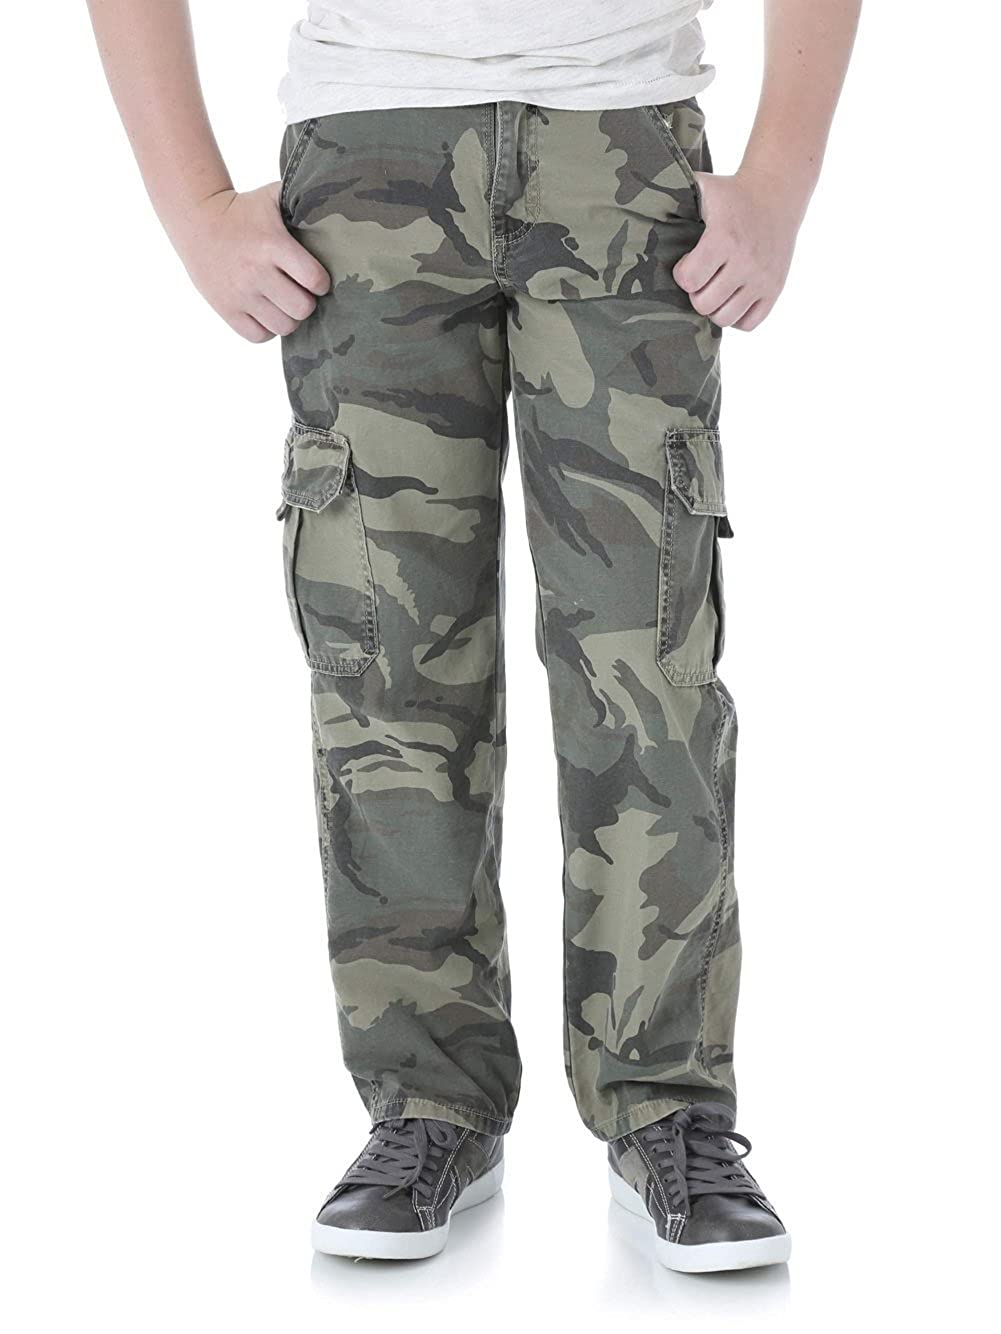 8ff09f25 Popular boys camo cargo jeans in classic twill. These casual boys camo  cargo pants by Wrangler are made from 100% cotton. Wranglers fashionable  cargo pants ...